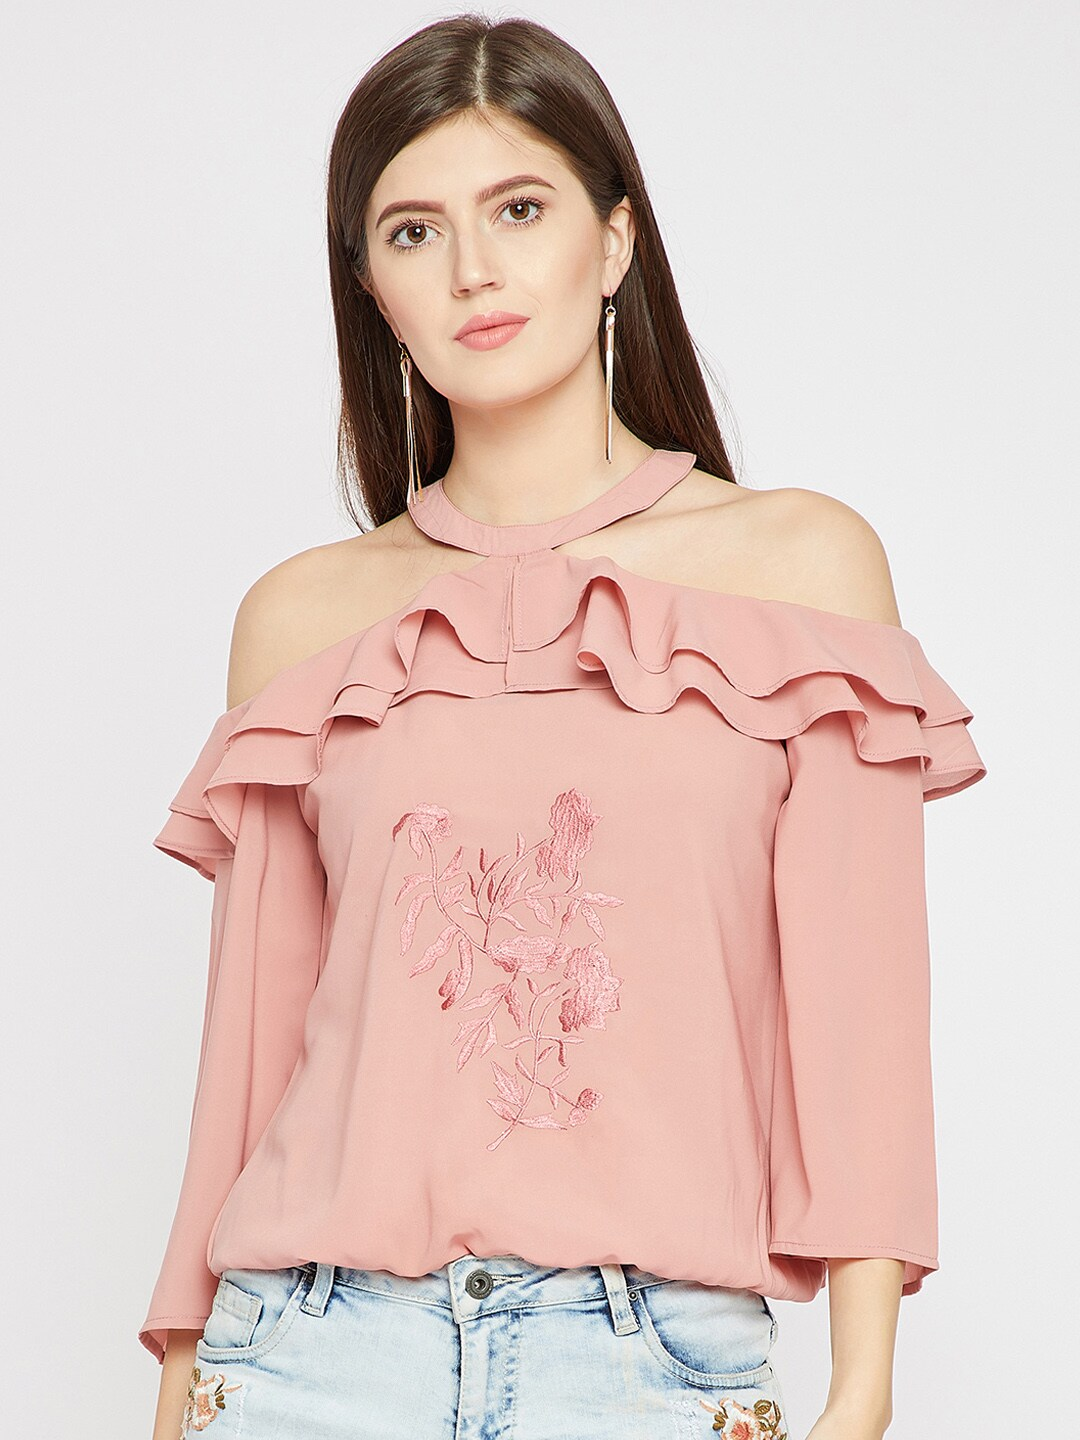 74f97e17b45 Marie Claire Pink Top - Buy Marie Claire Pink Top online in India